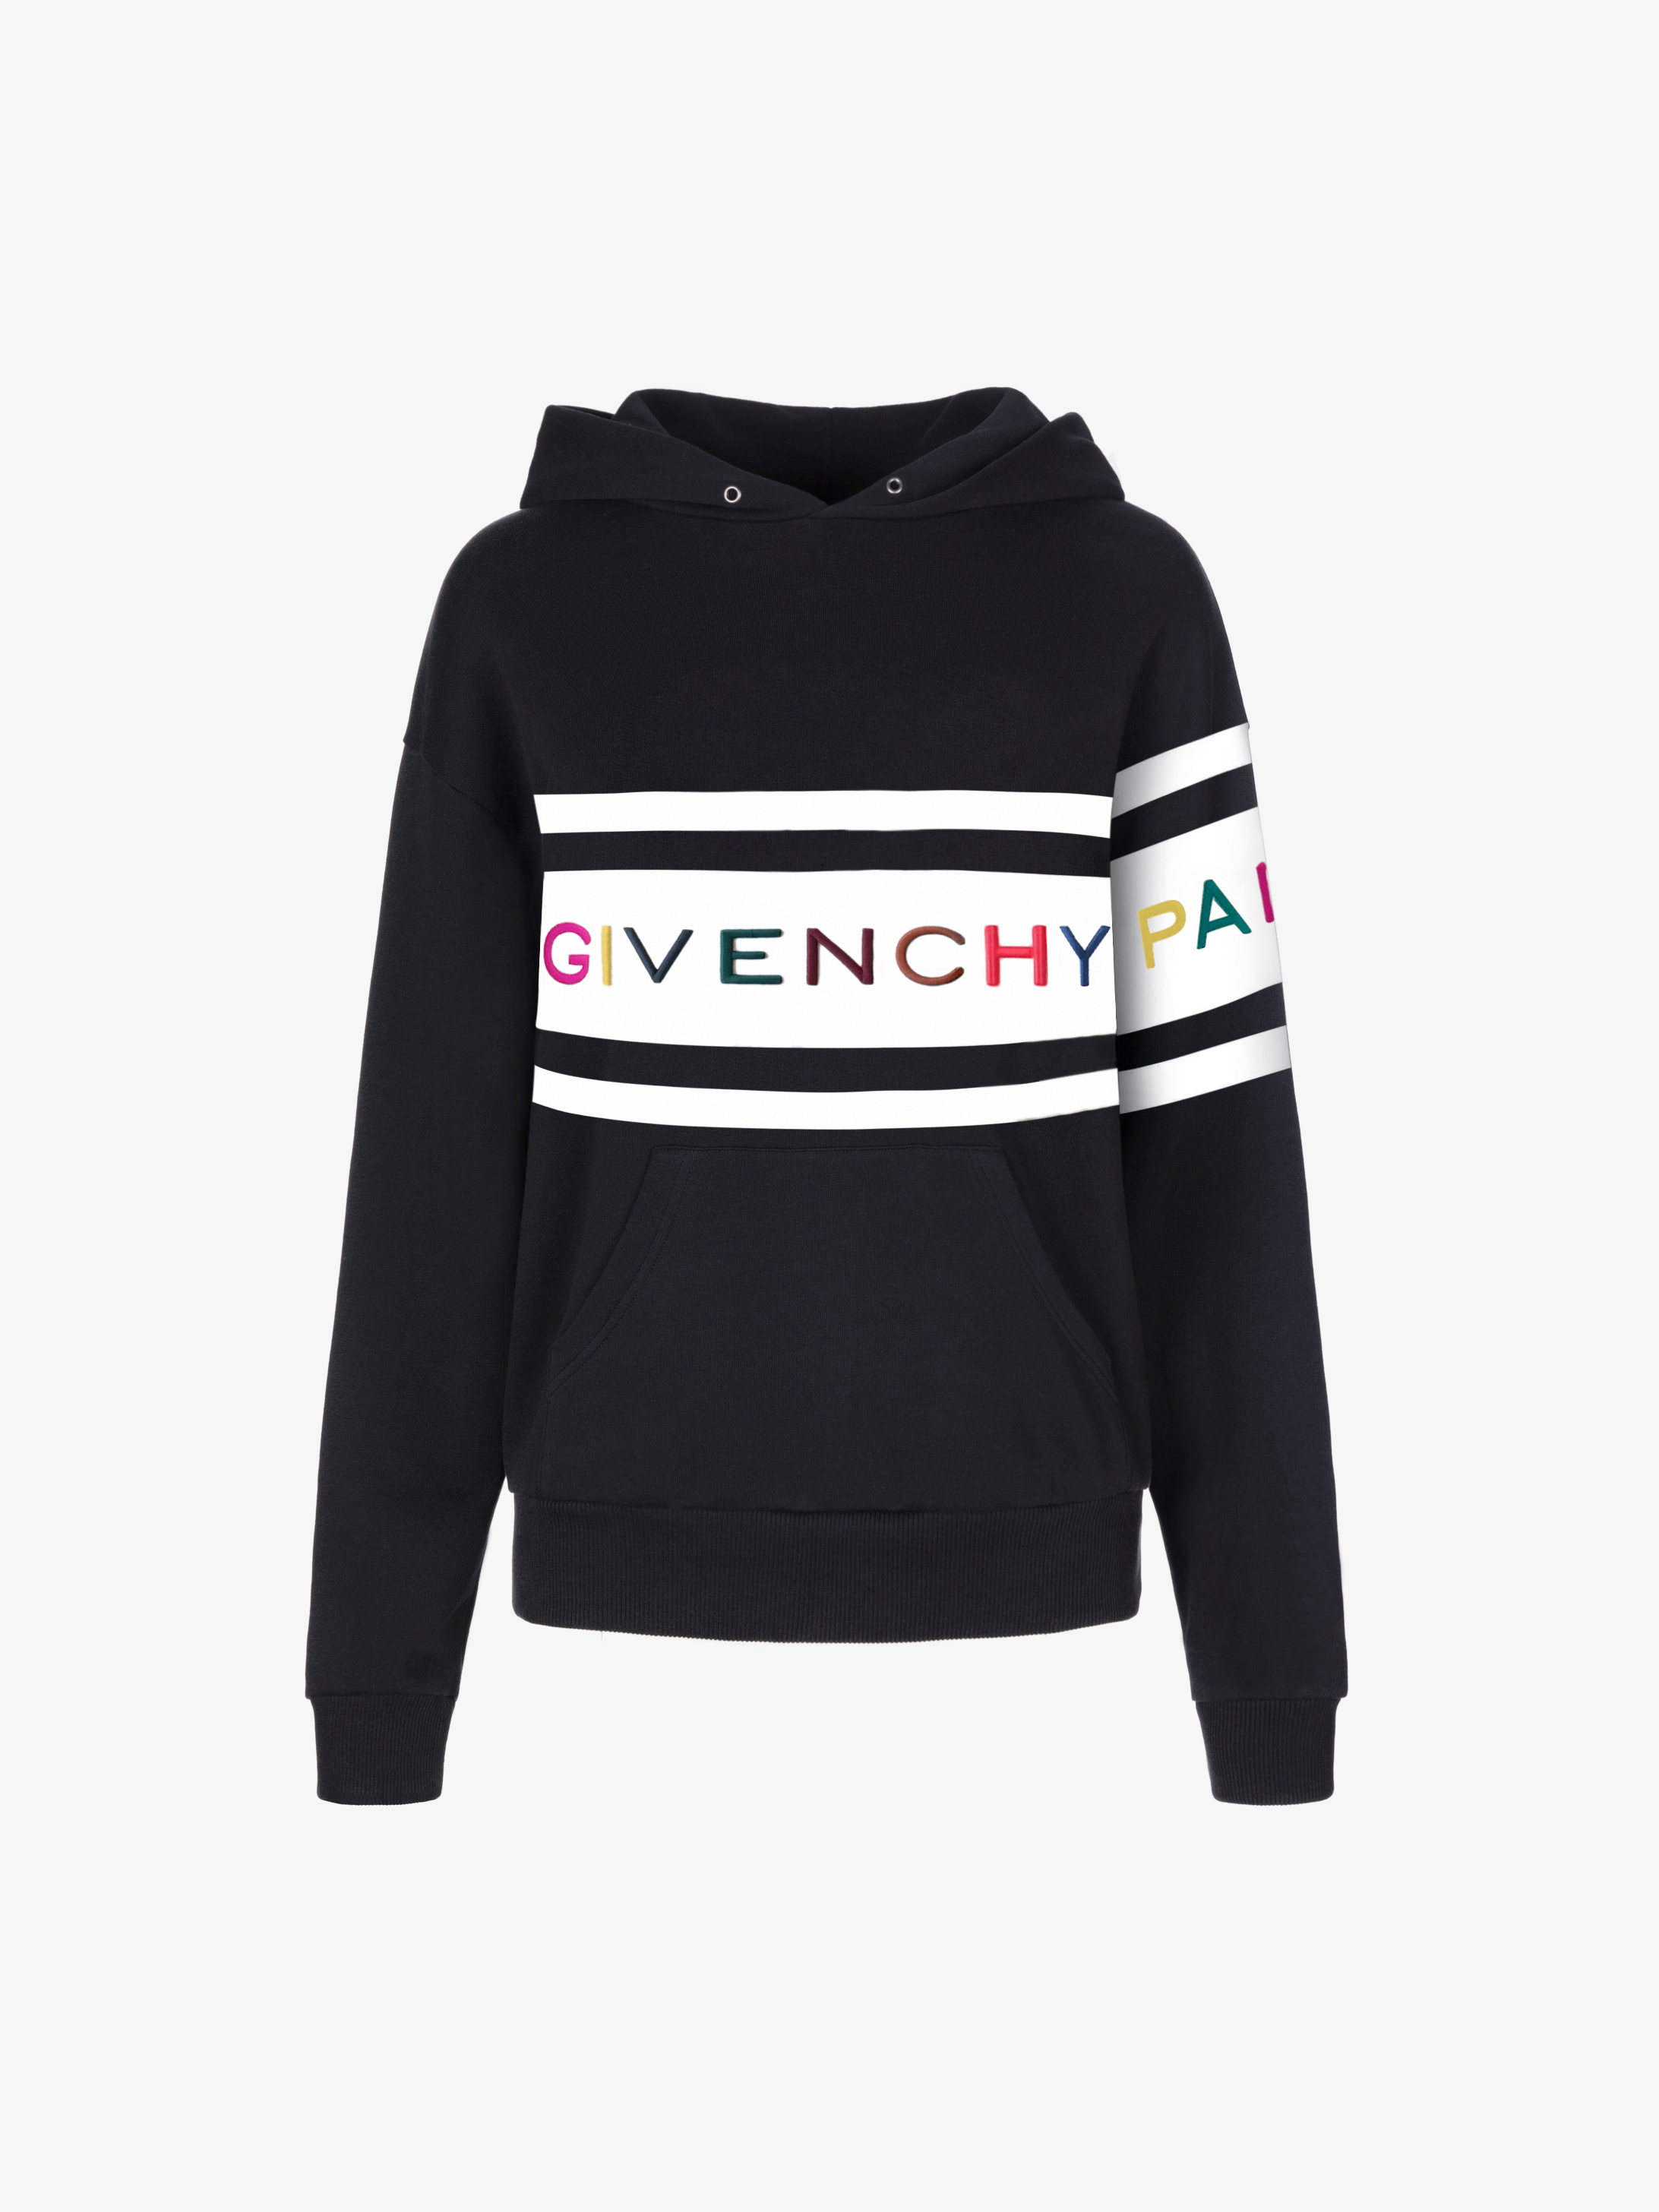 GIVENCHY PARIS embroidered hoodie